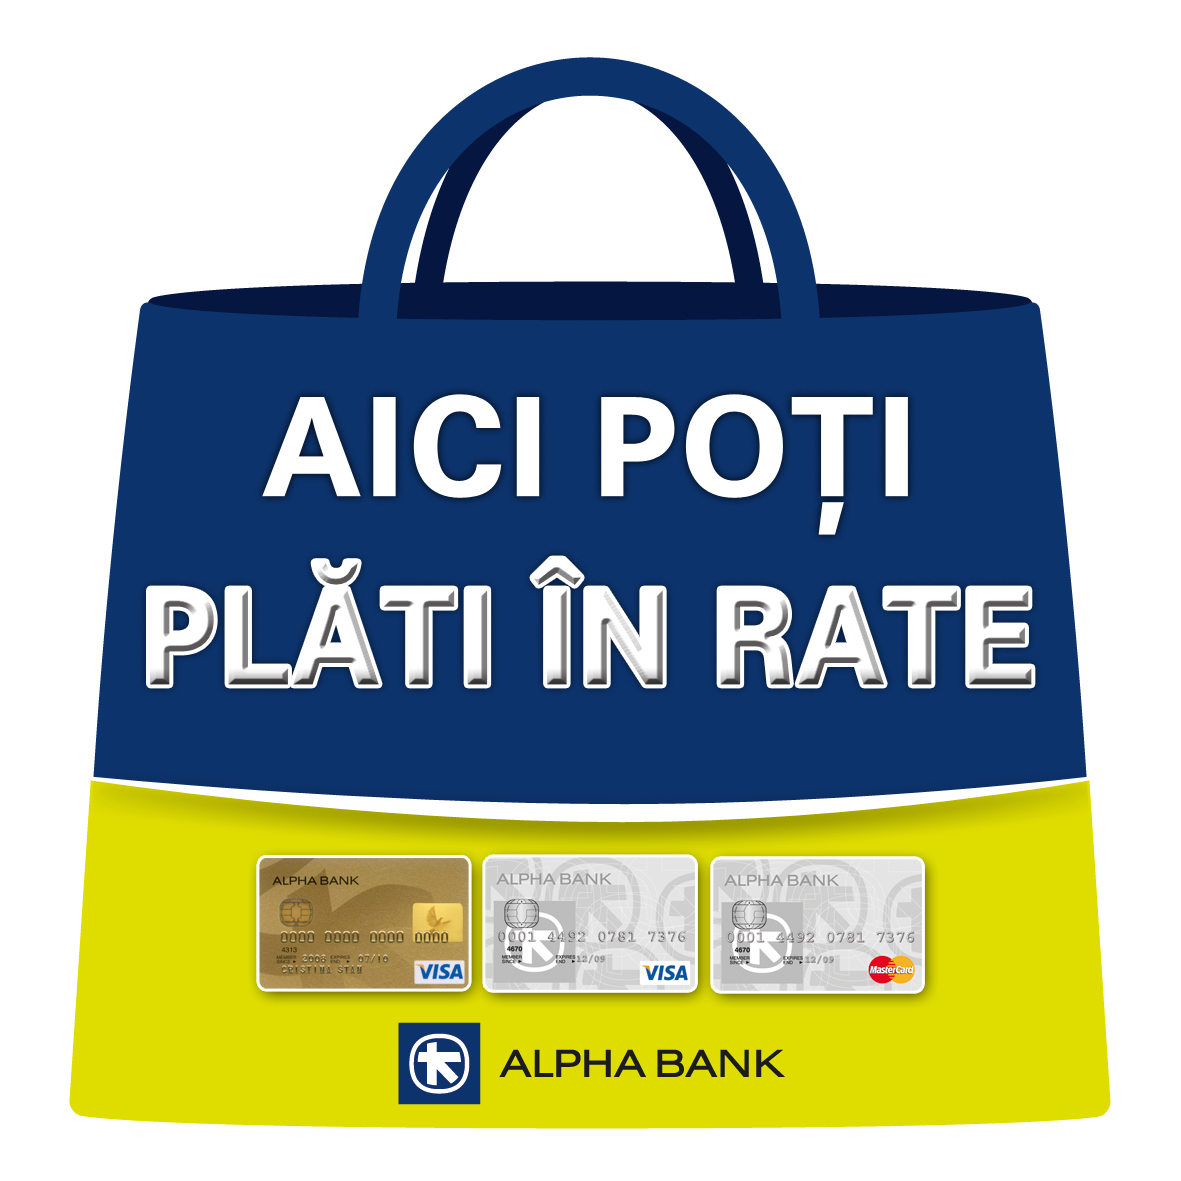 Alpha Bank plata rate